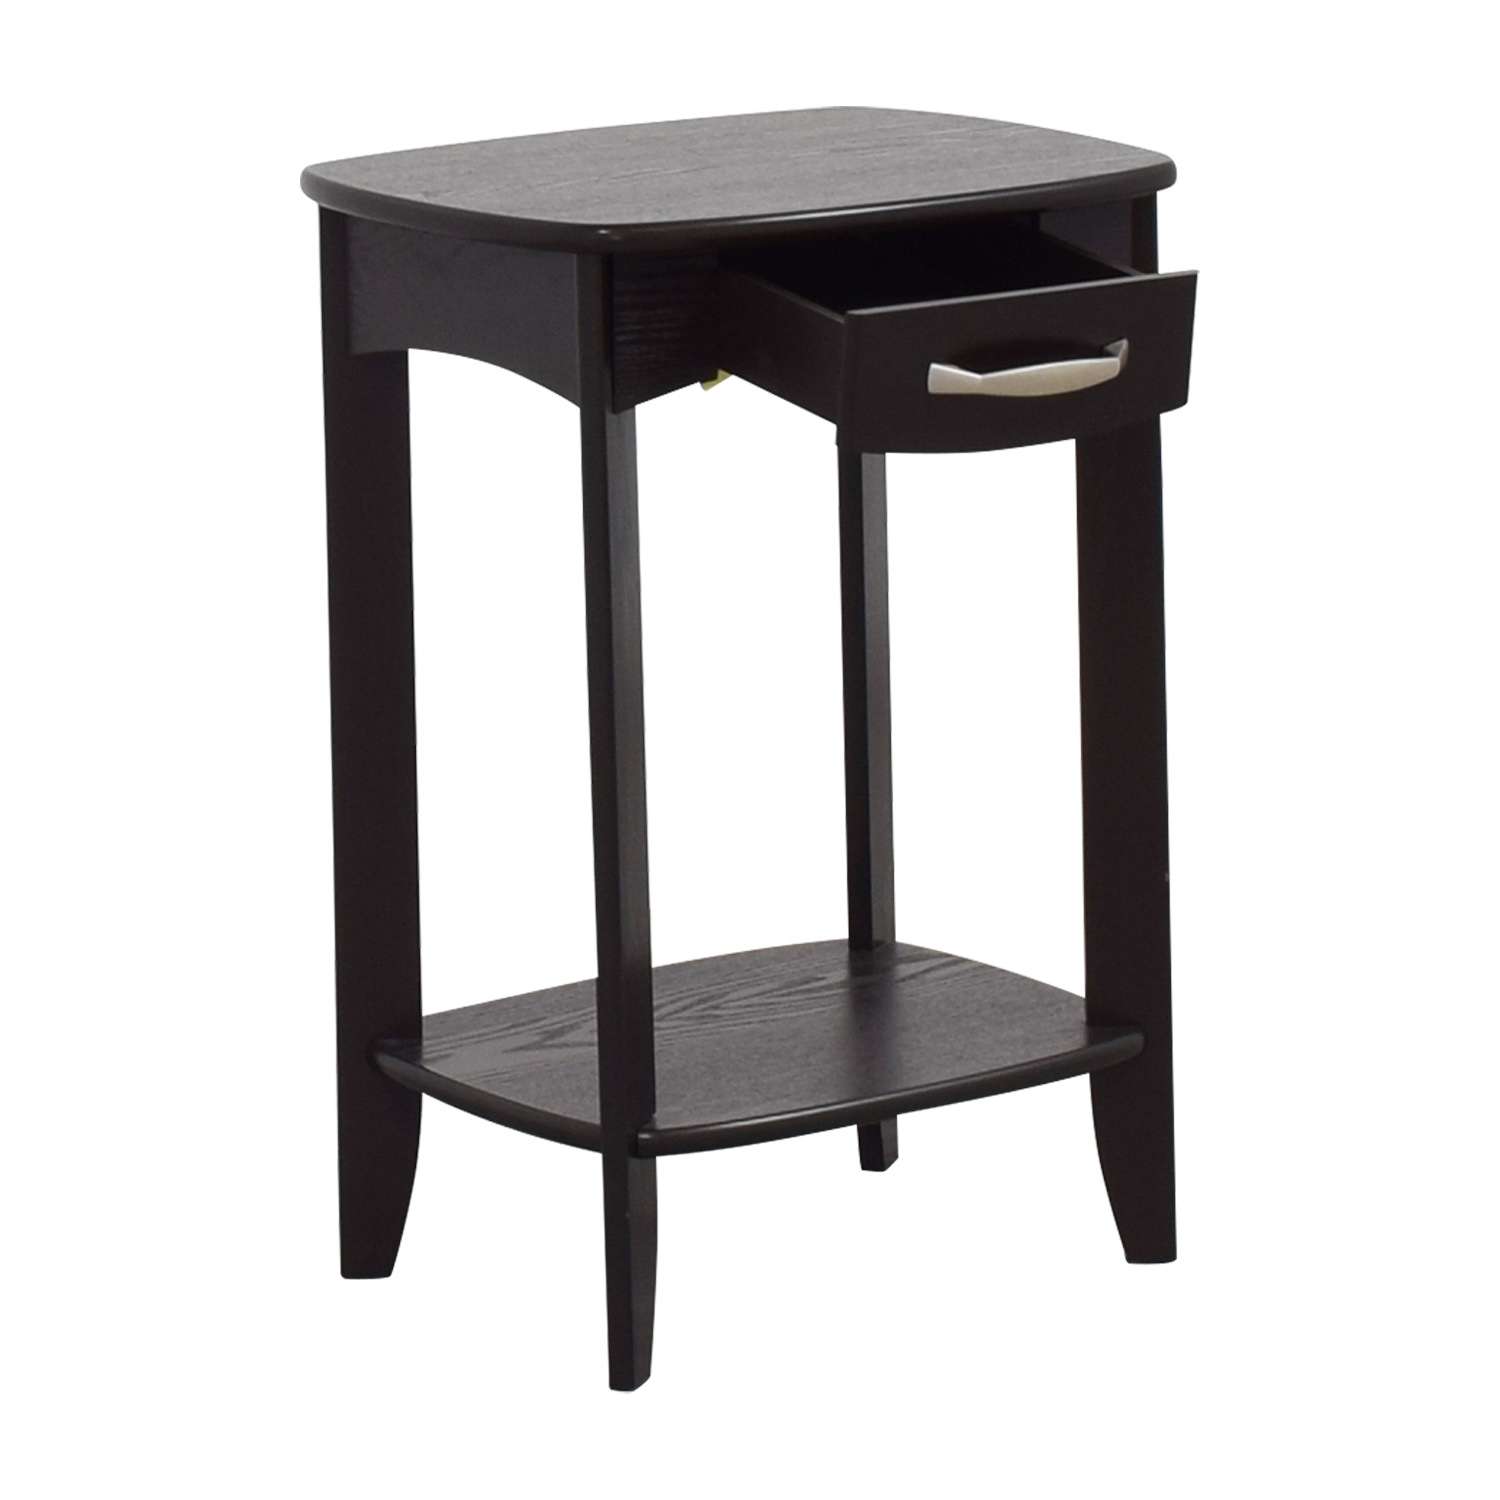 buy Black Single Drawer End Table online